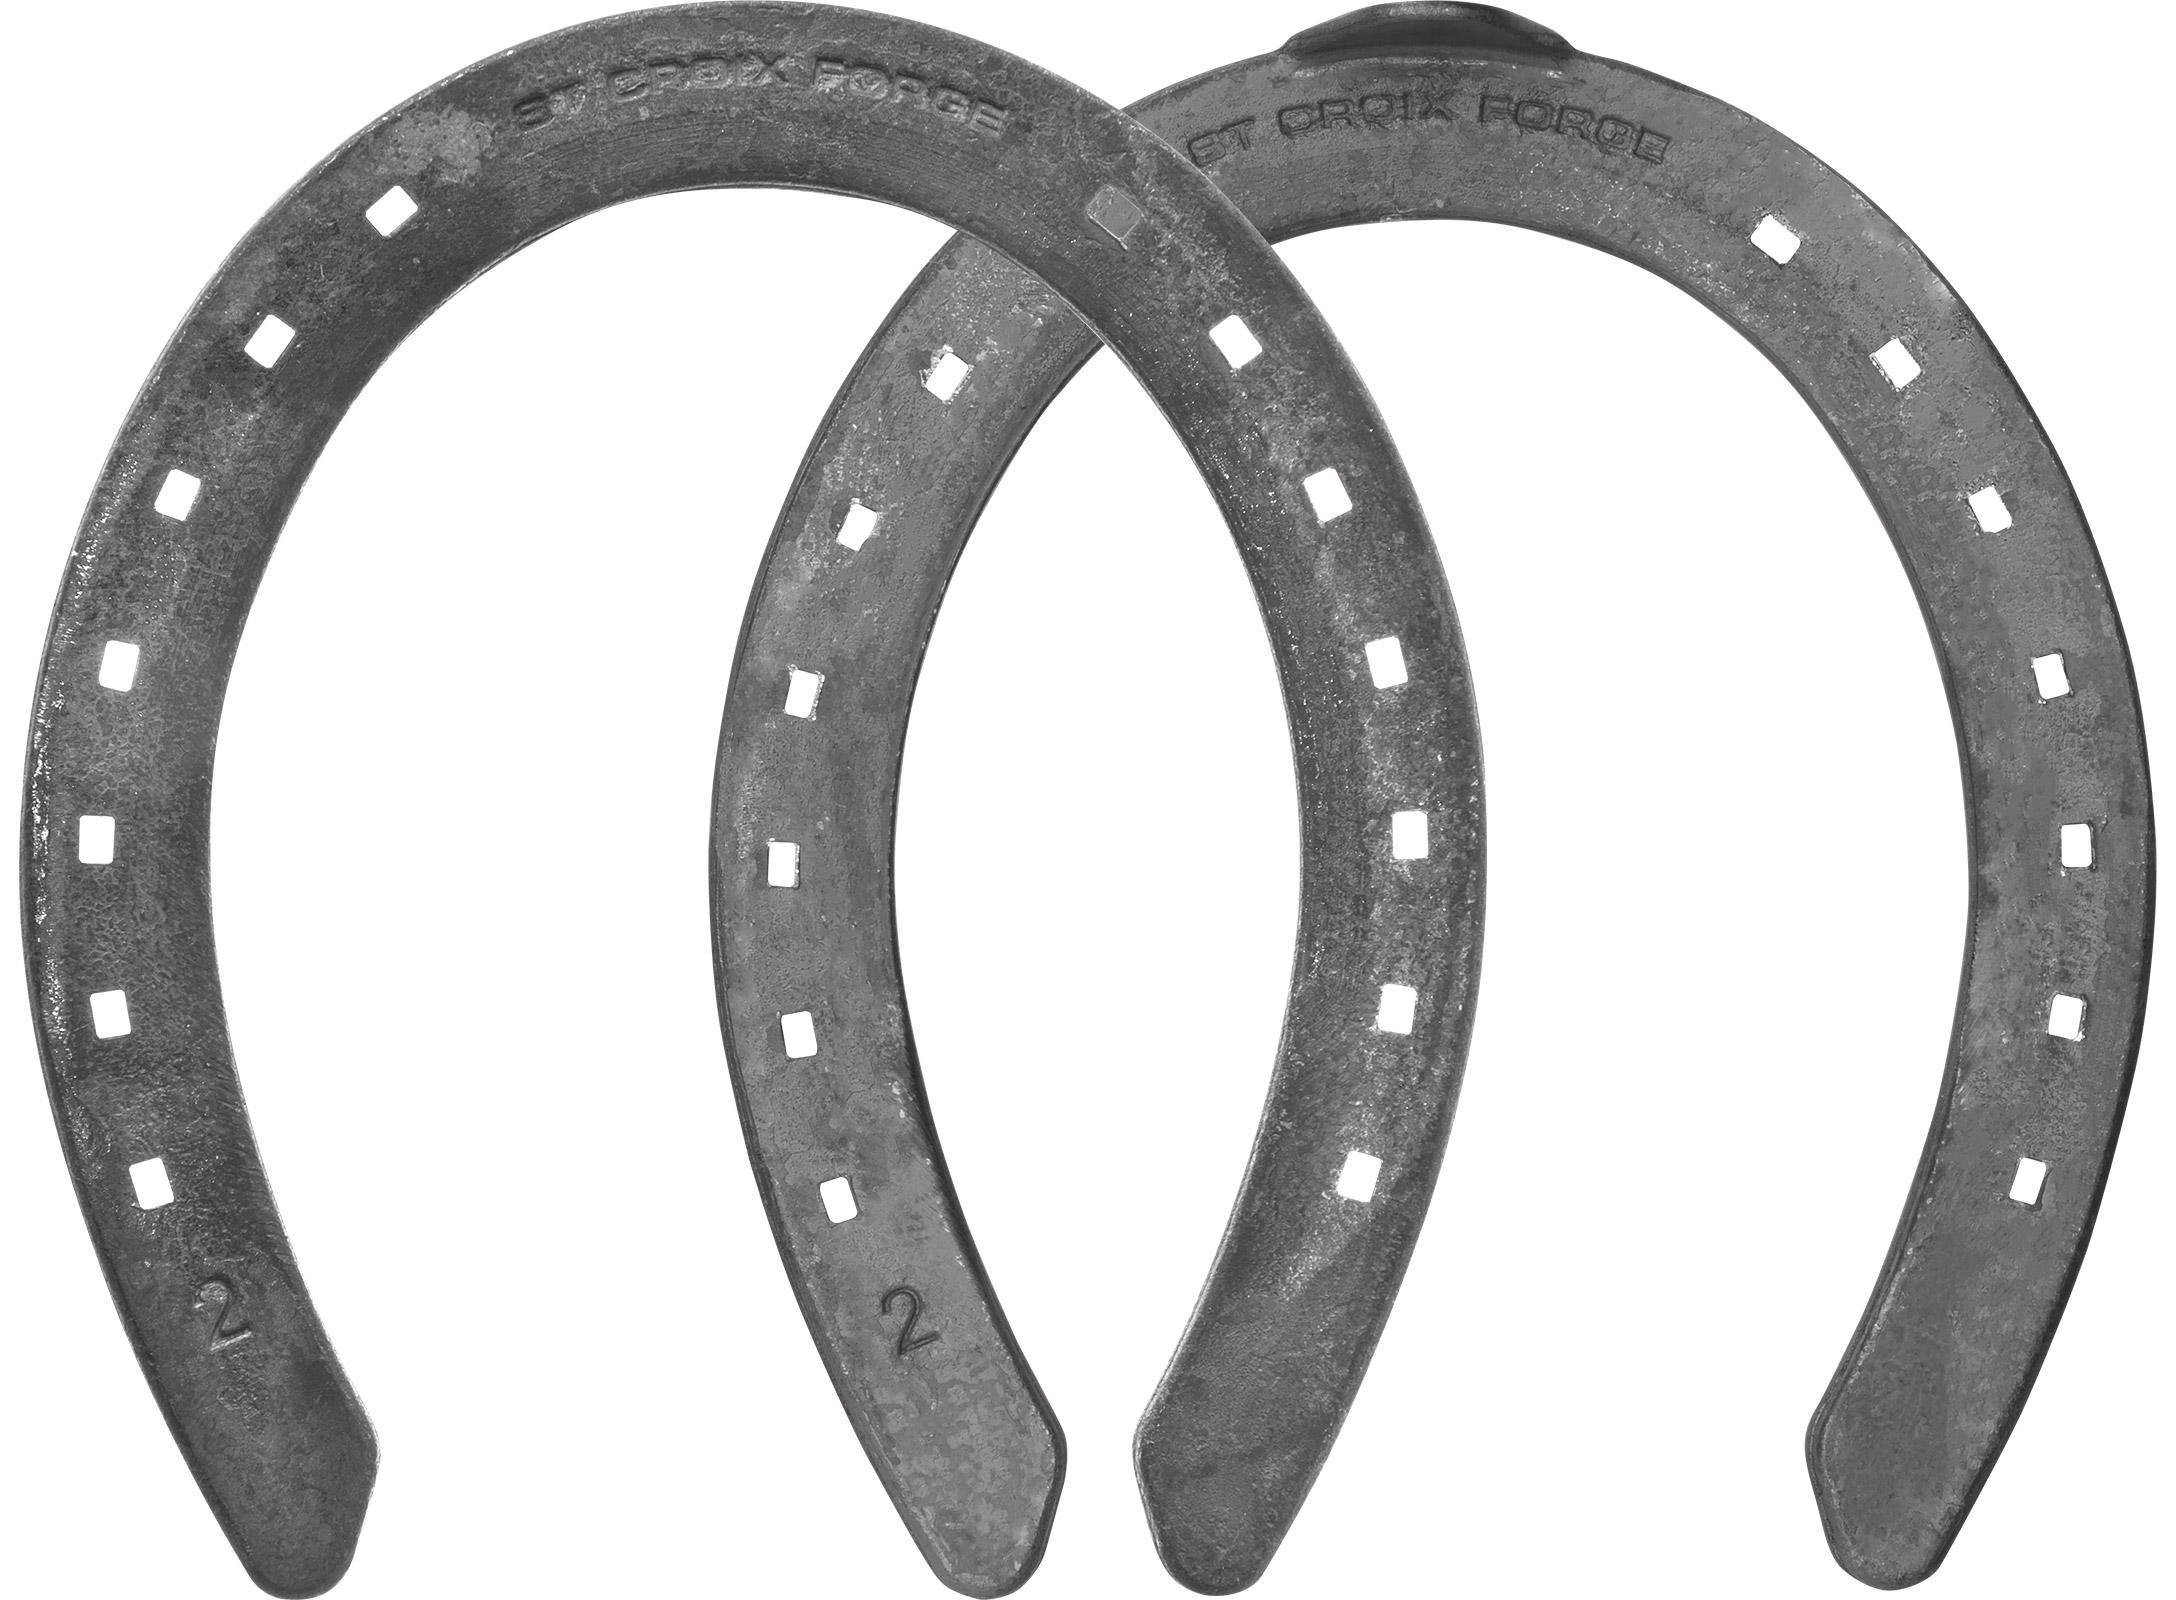 St.Croix Rapid Halfround horseshoes, hind unclipped and toe clip, hoof side view